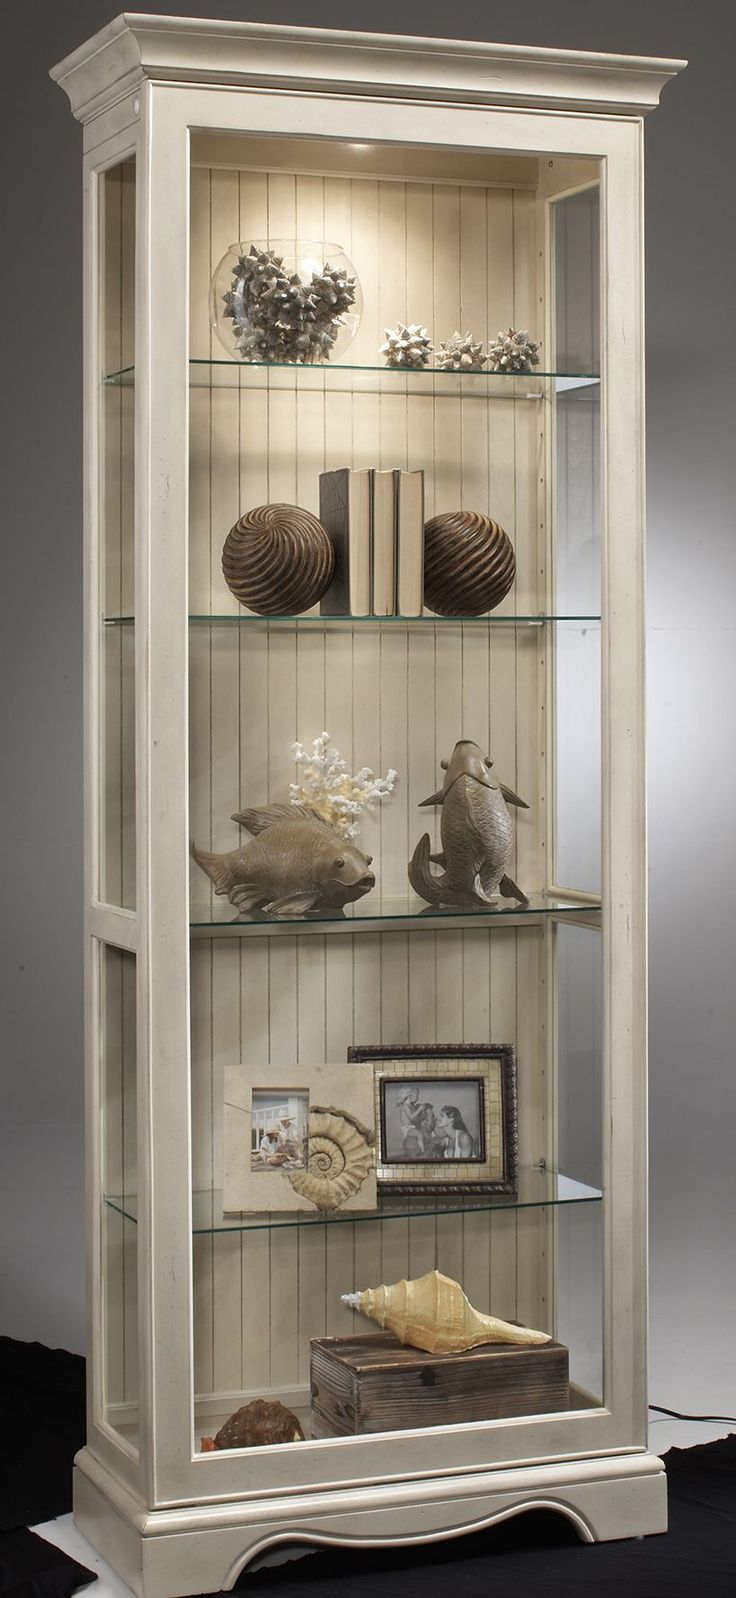 Unique Cabinet Door Display Hardware